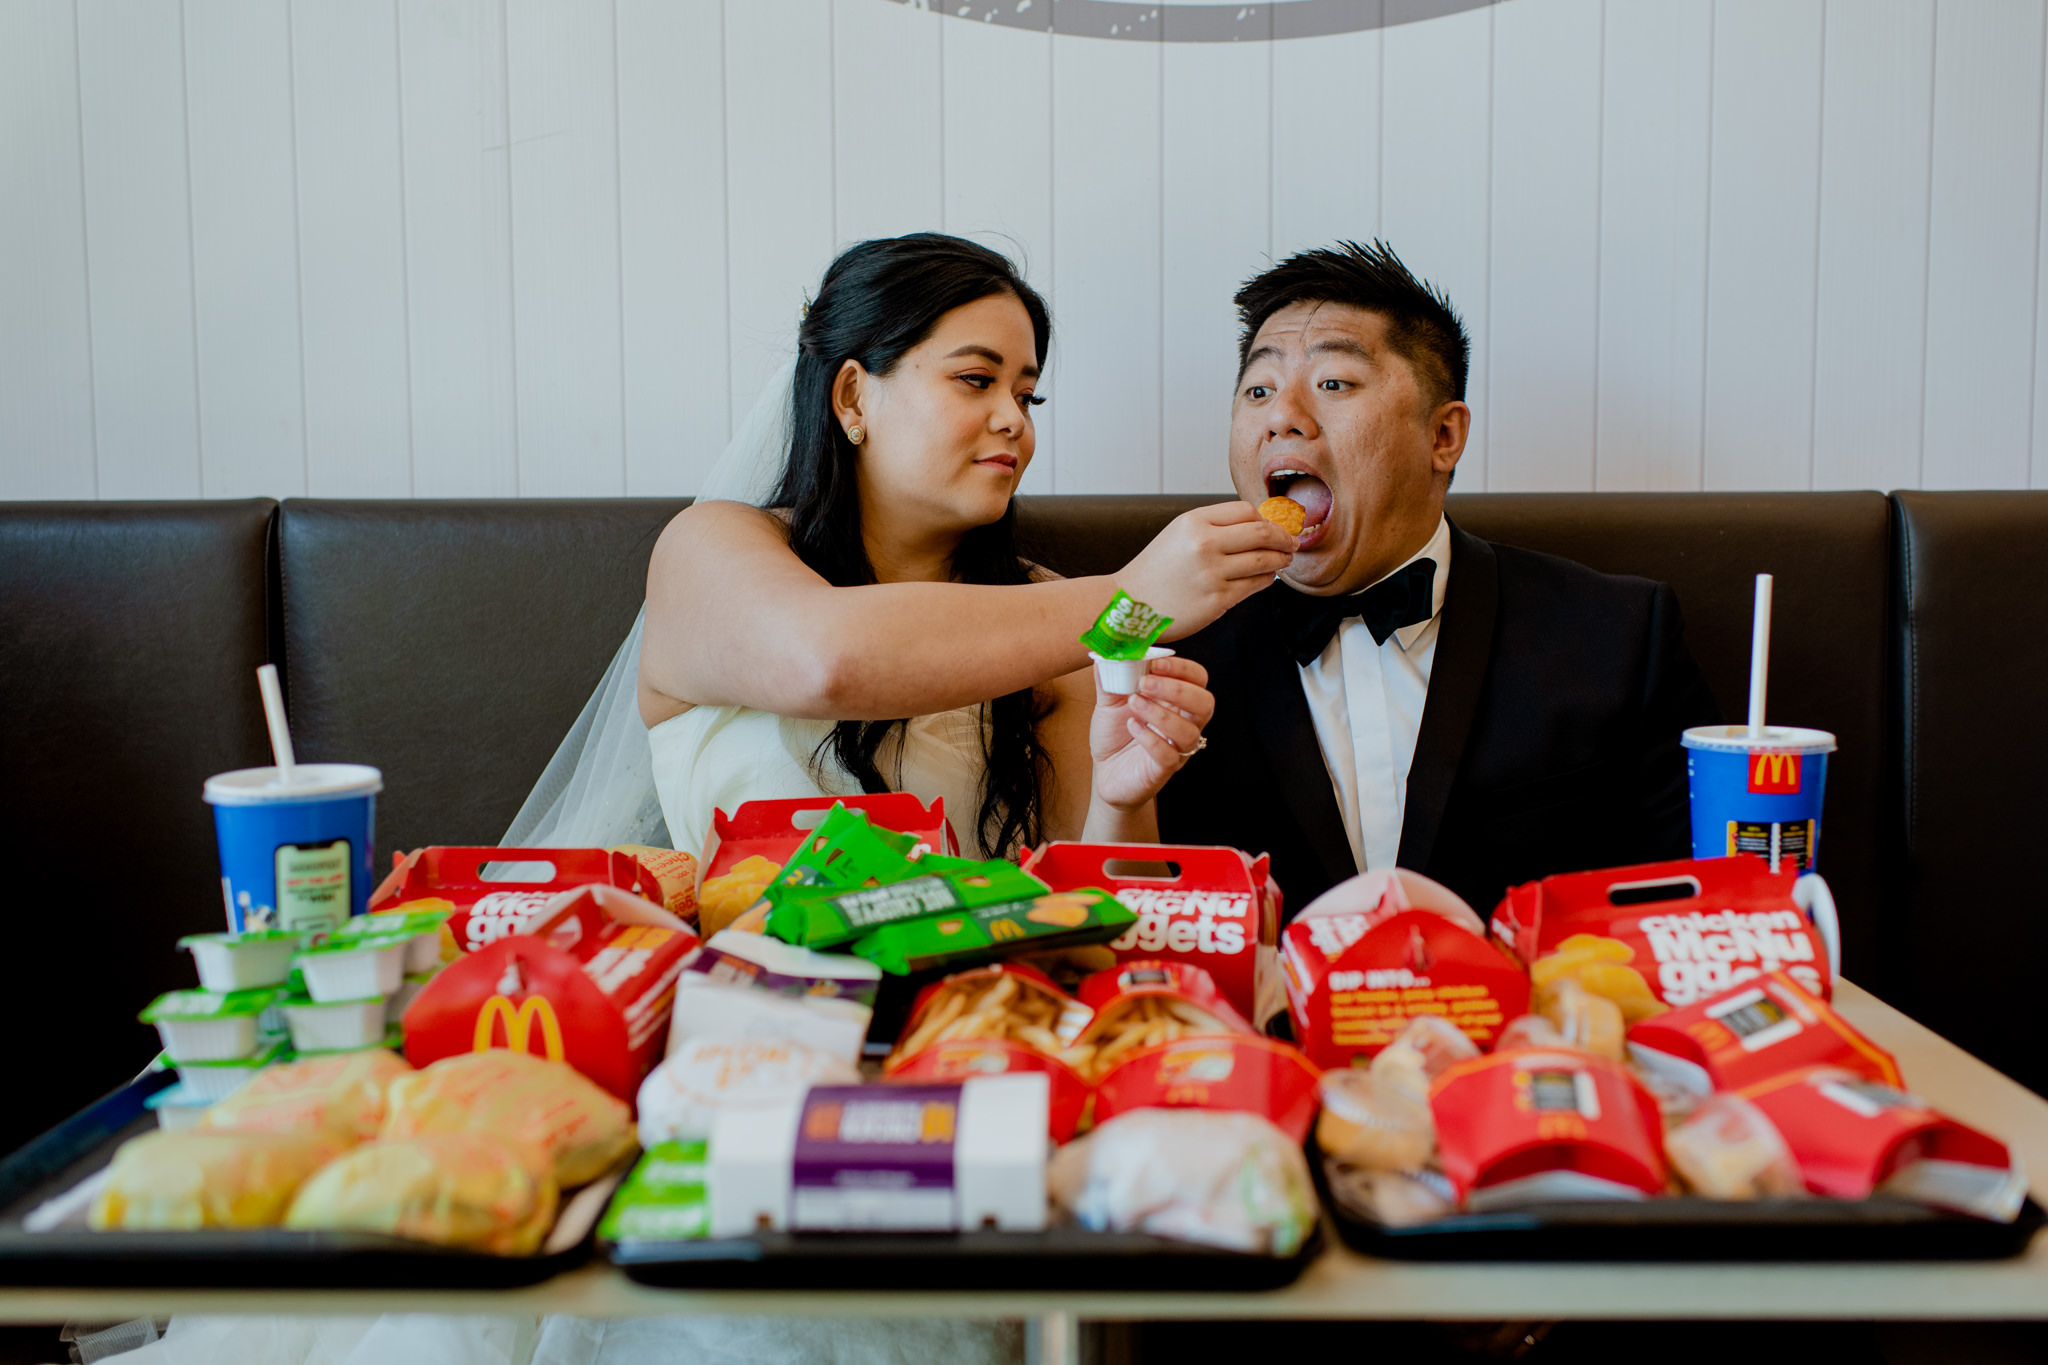 A groom has McDonald's nuggets fed to him by his bride